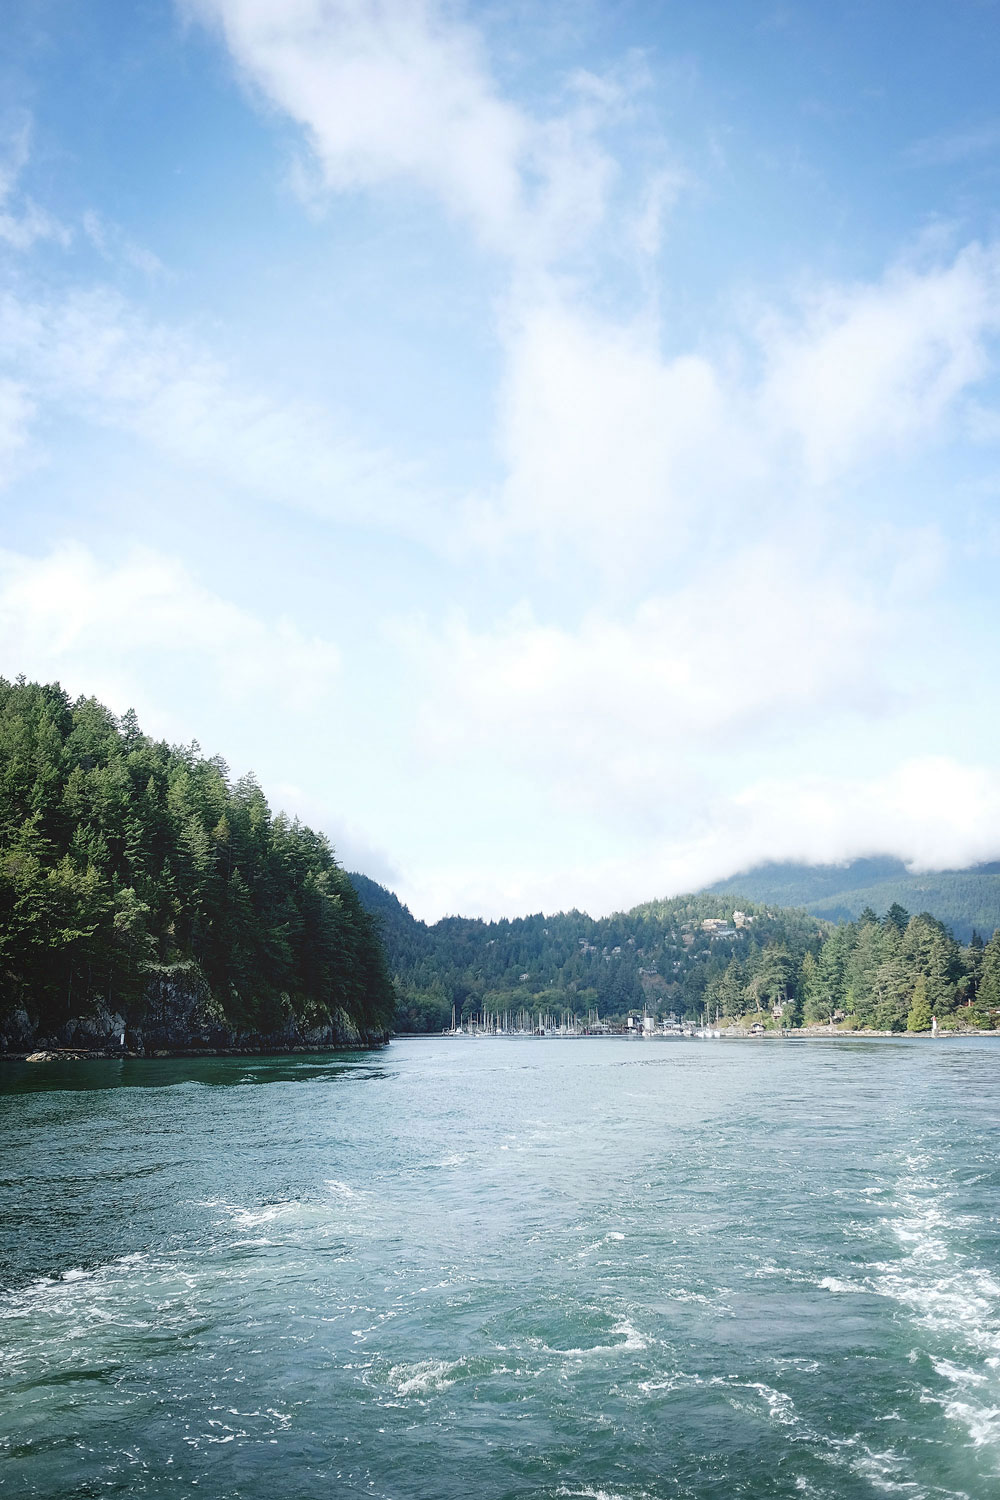 What to do in bowen island for the weekend by To Vogue or Bust